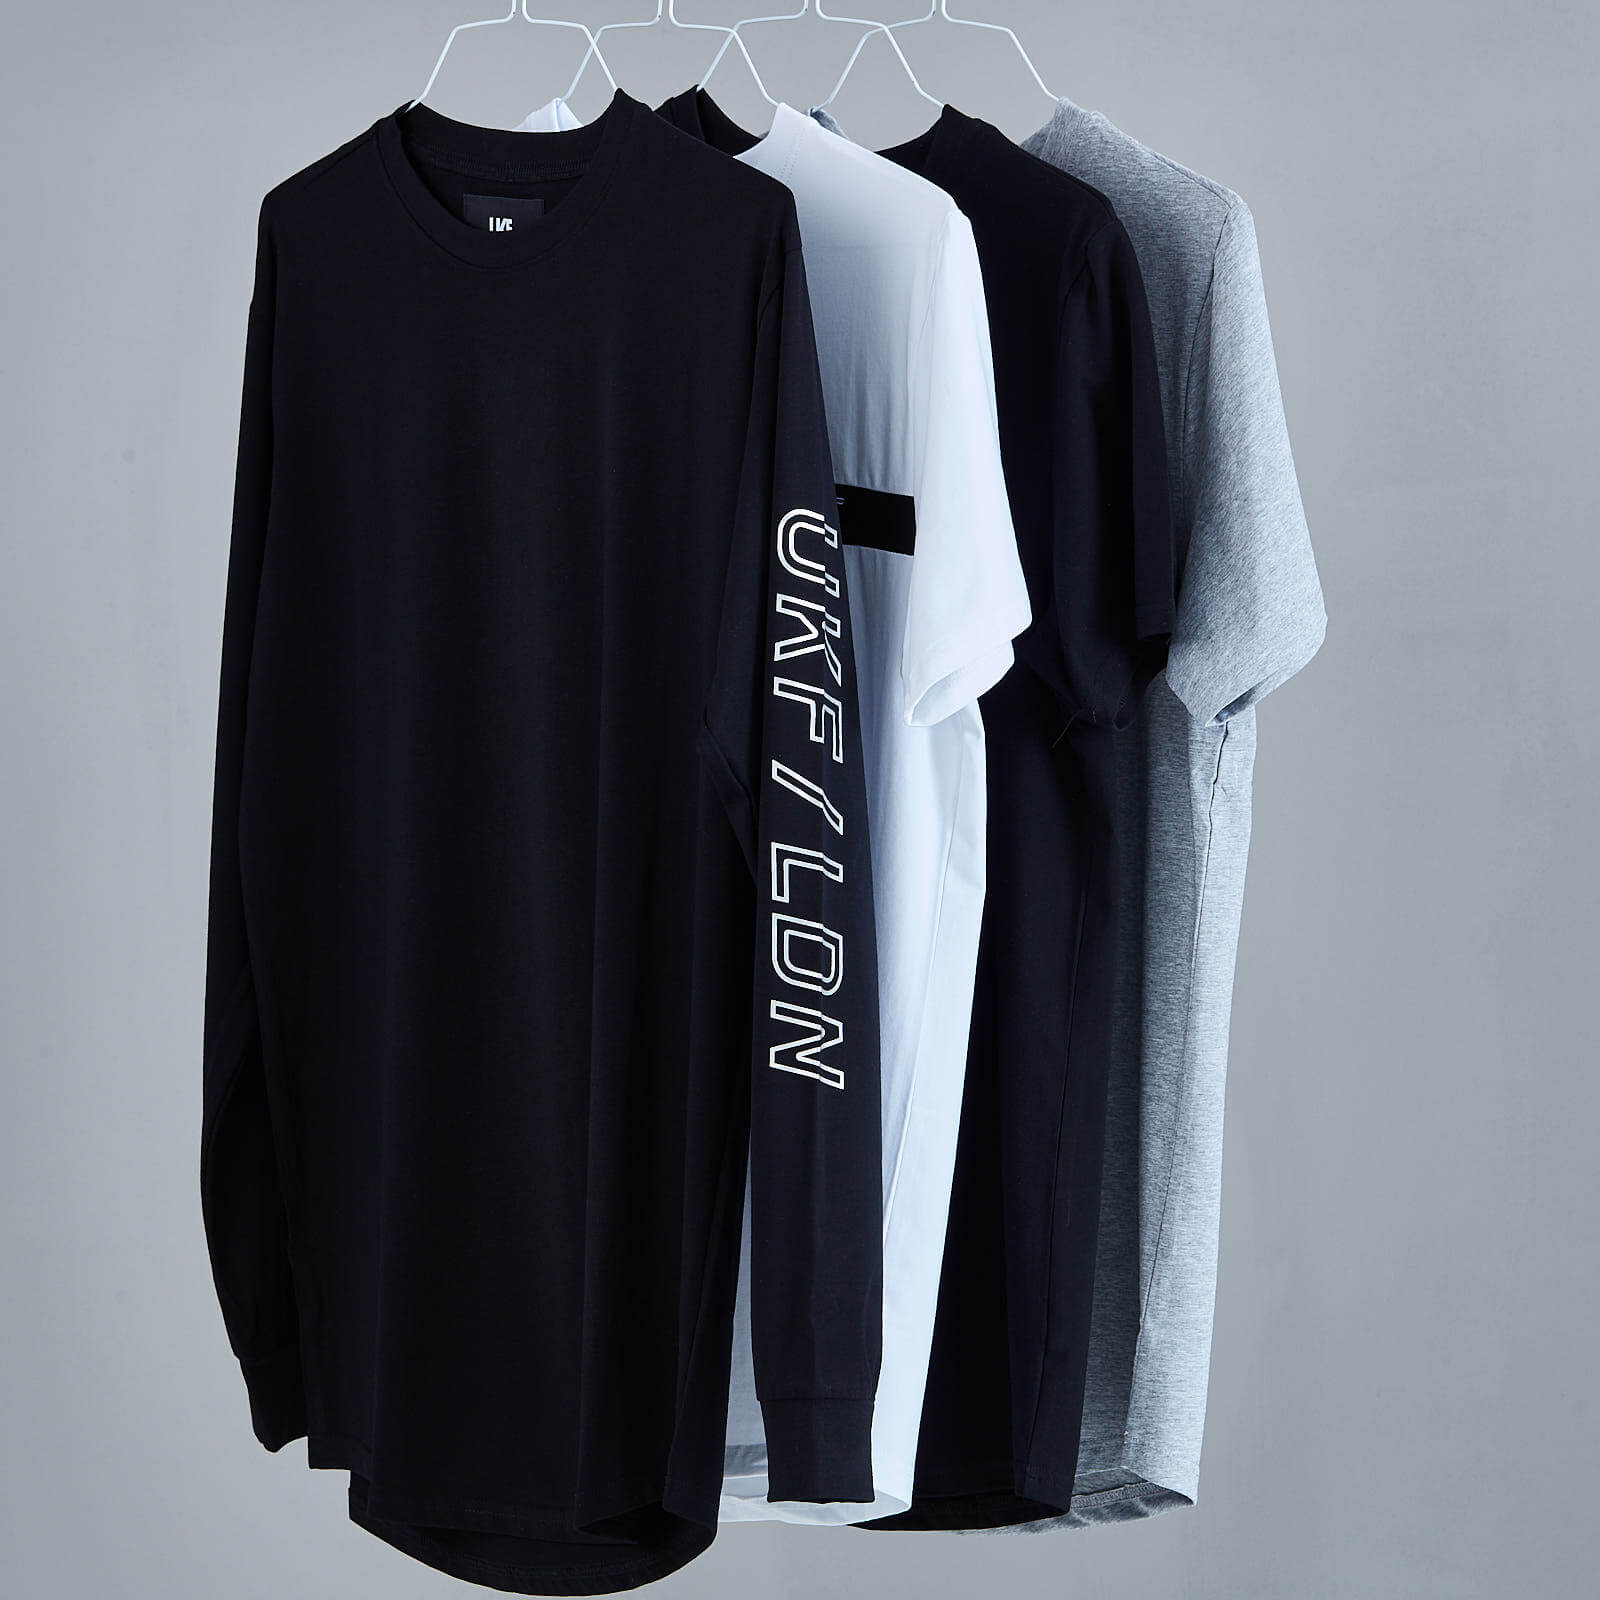 UKF / LDN Long sleeve T-shirt